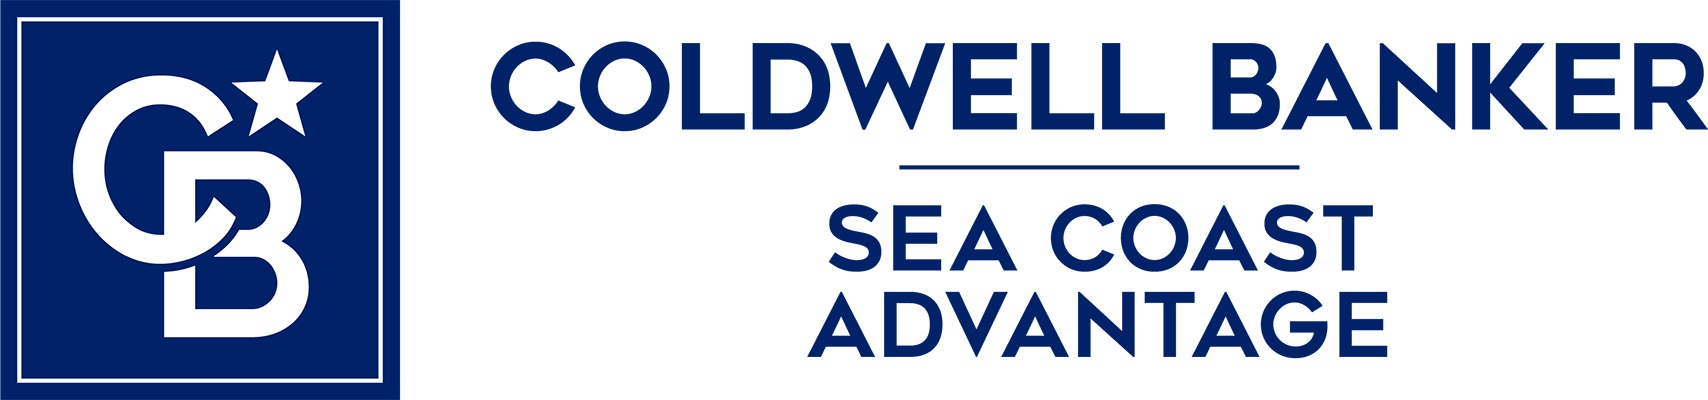 Jill Kerler - Coldwell Banker Sea Coast Advantage Realty Logo